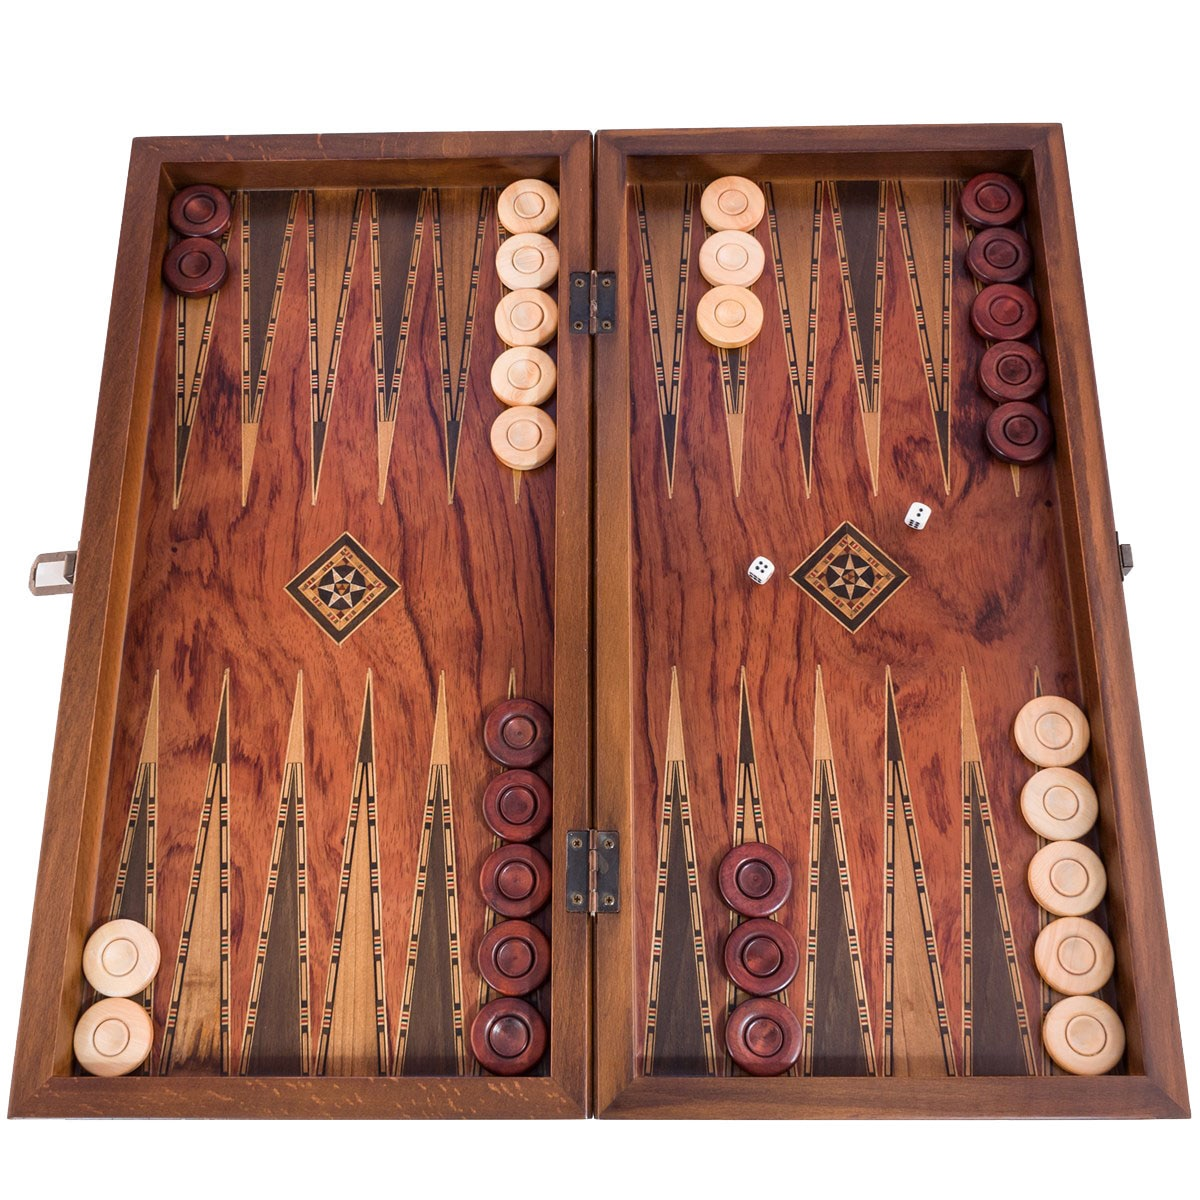 Backgammon Board Game Set Luxury Classic Big Size - Solid Rose Wood Mosaic Engraved - With Boxwood Stamps Checkers Chessboard